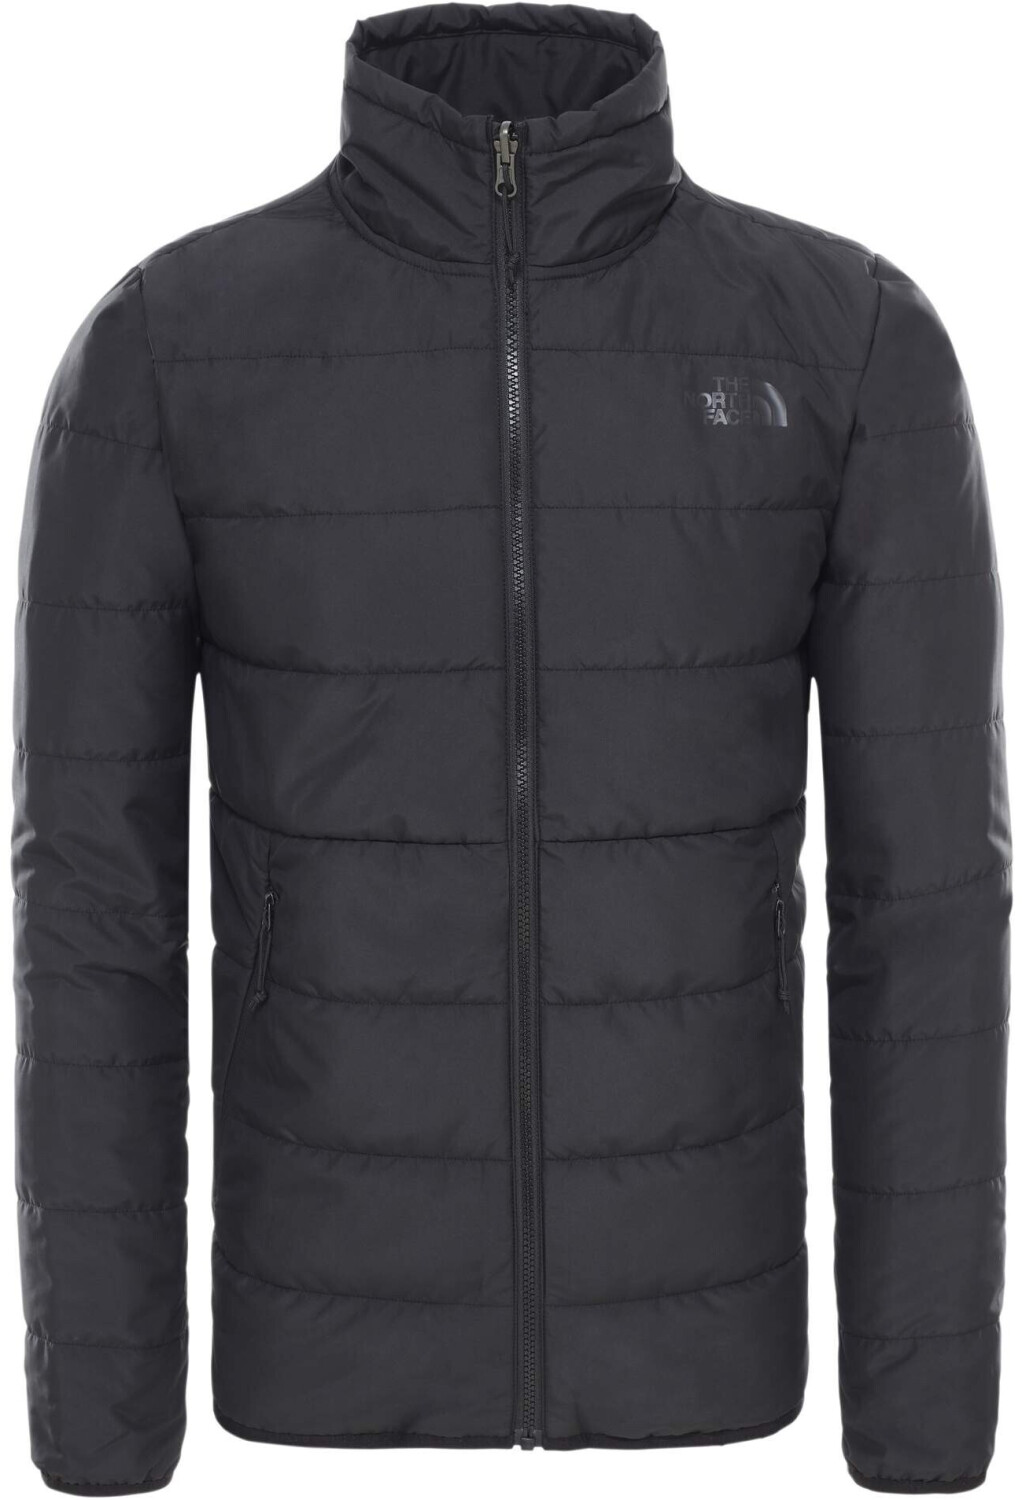 The North Face Men's Carto Zip-In Triclimate Jacket